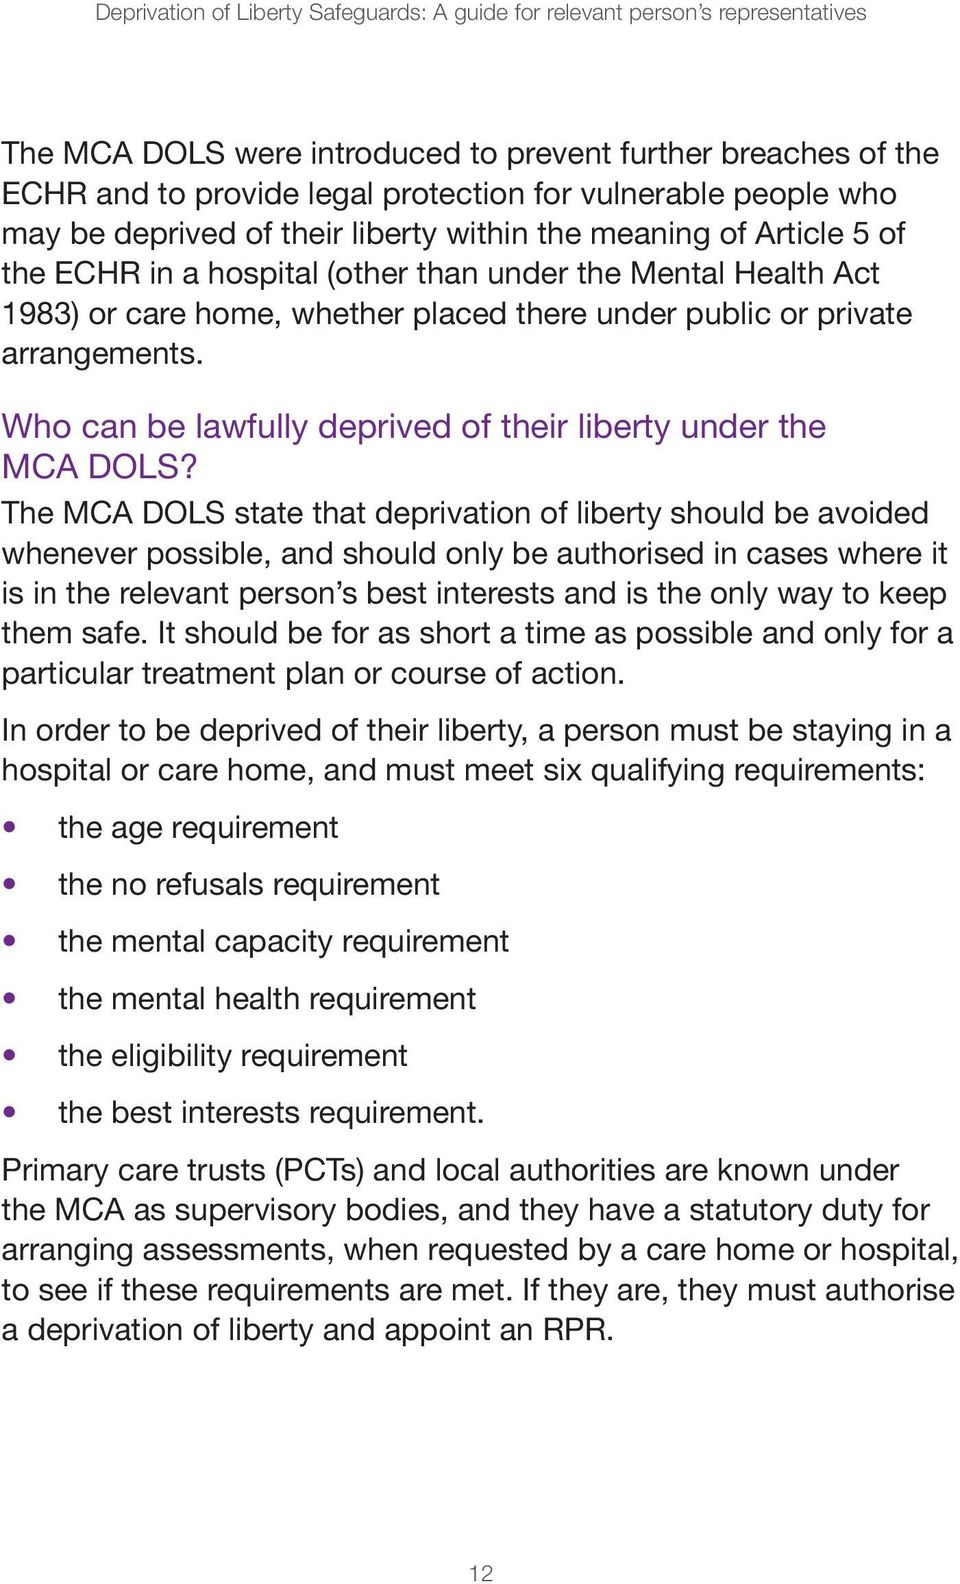 private arrangements. Who can be lawfully deprived of their liberty under the MCA DOLS?